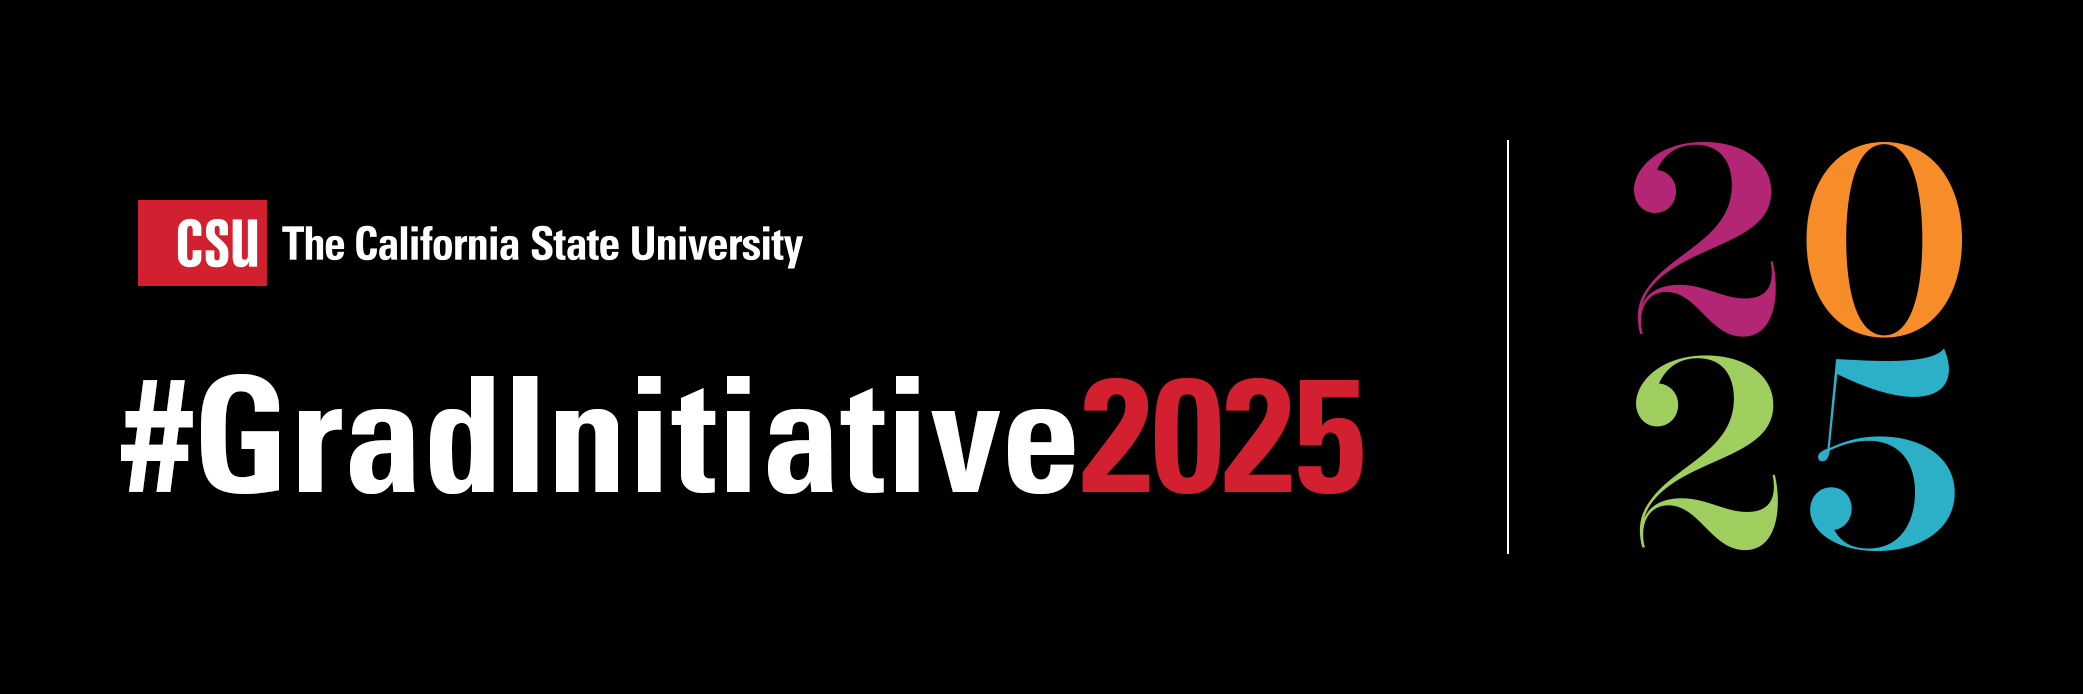 GI2025 Symposium Twitter cover image download